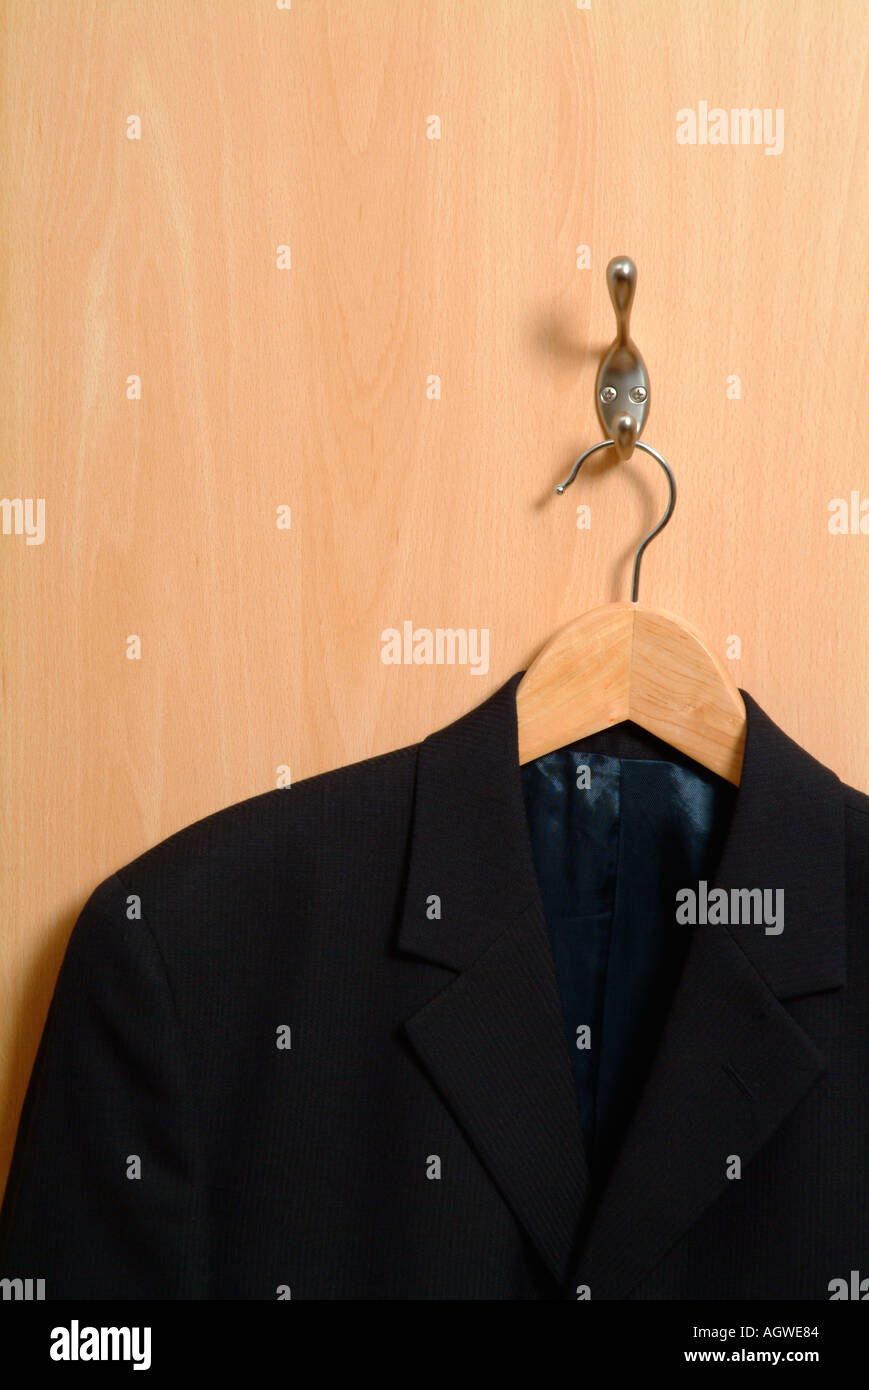 coathanger and jacket on the back of an office door - Stock Image